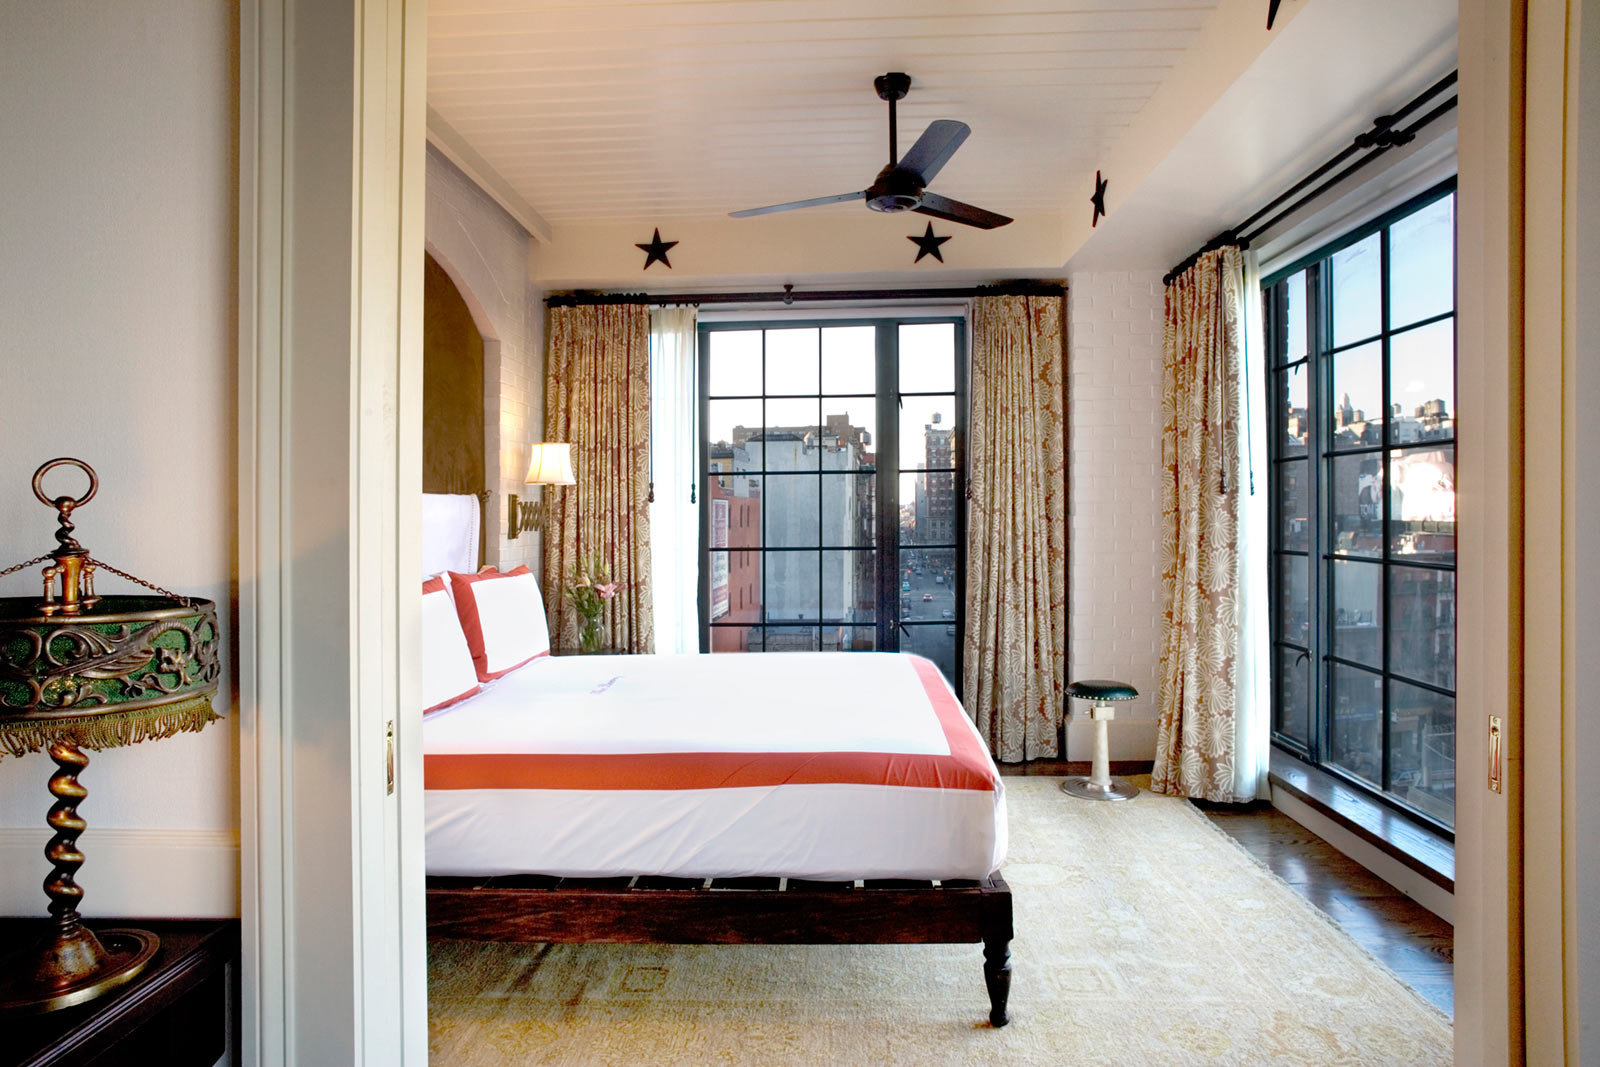 The Bowery Hotel, New York City